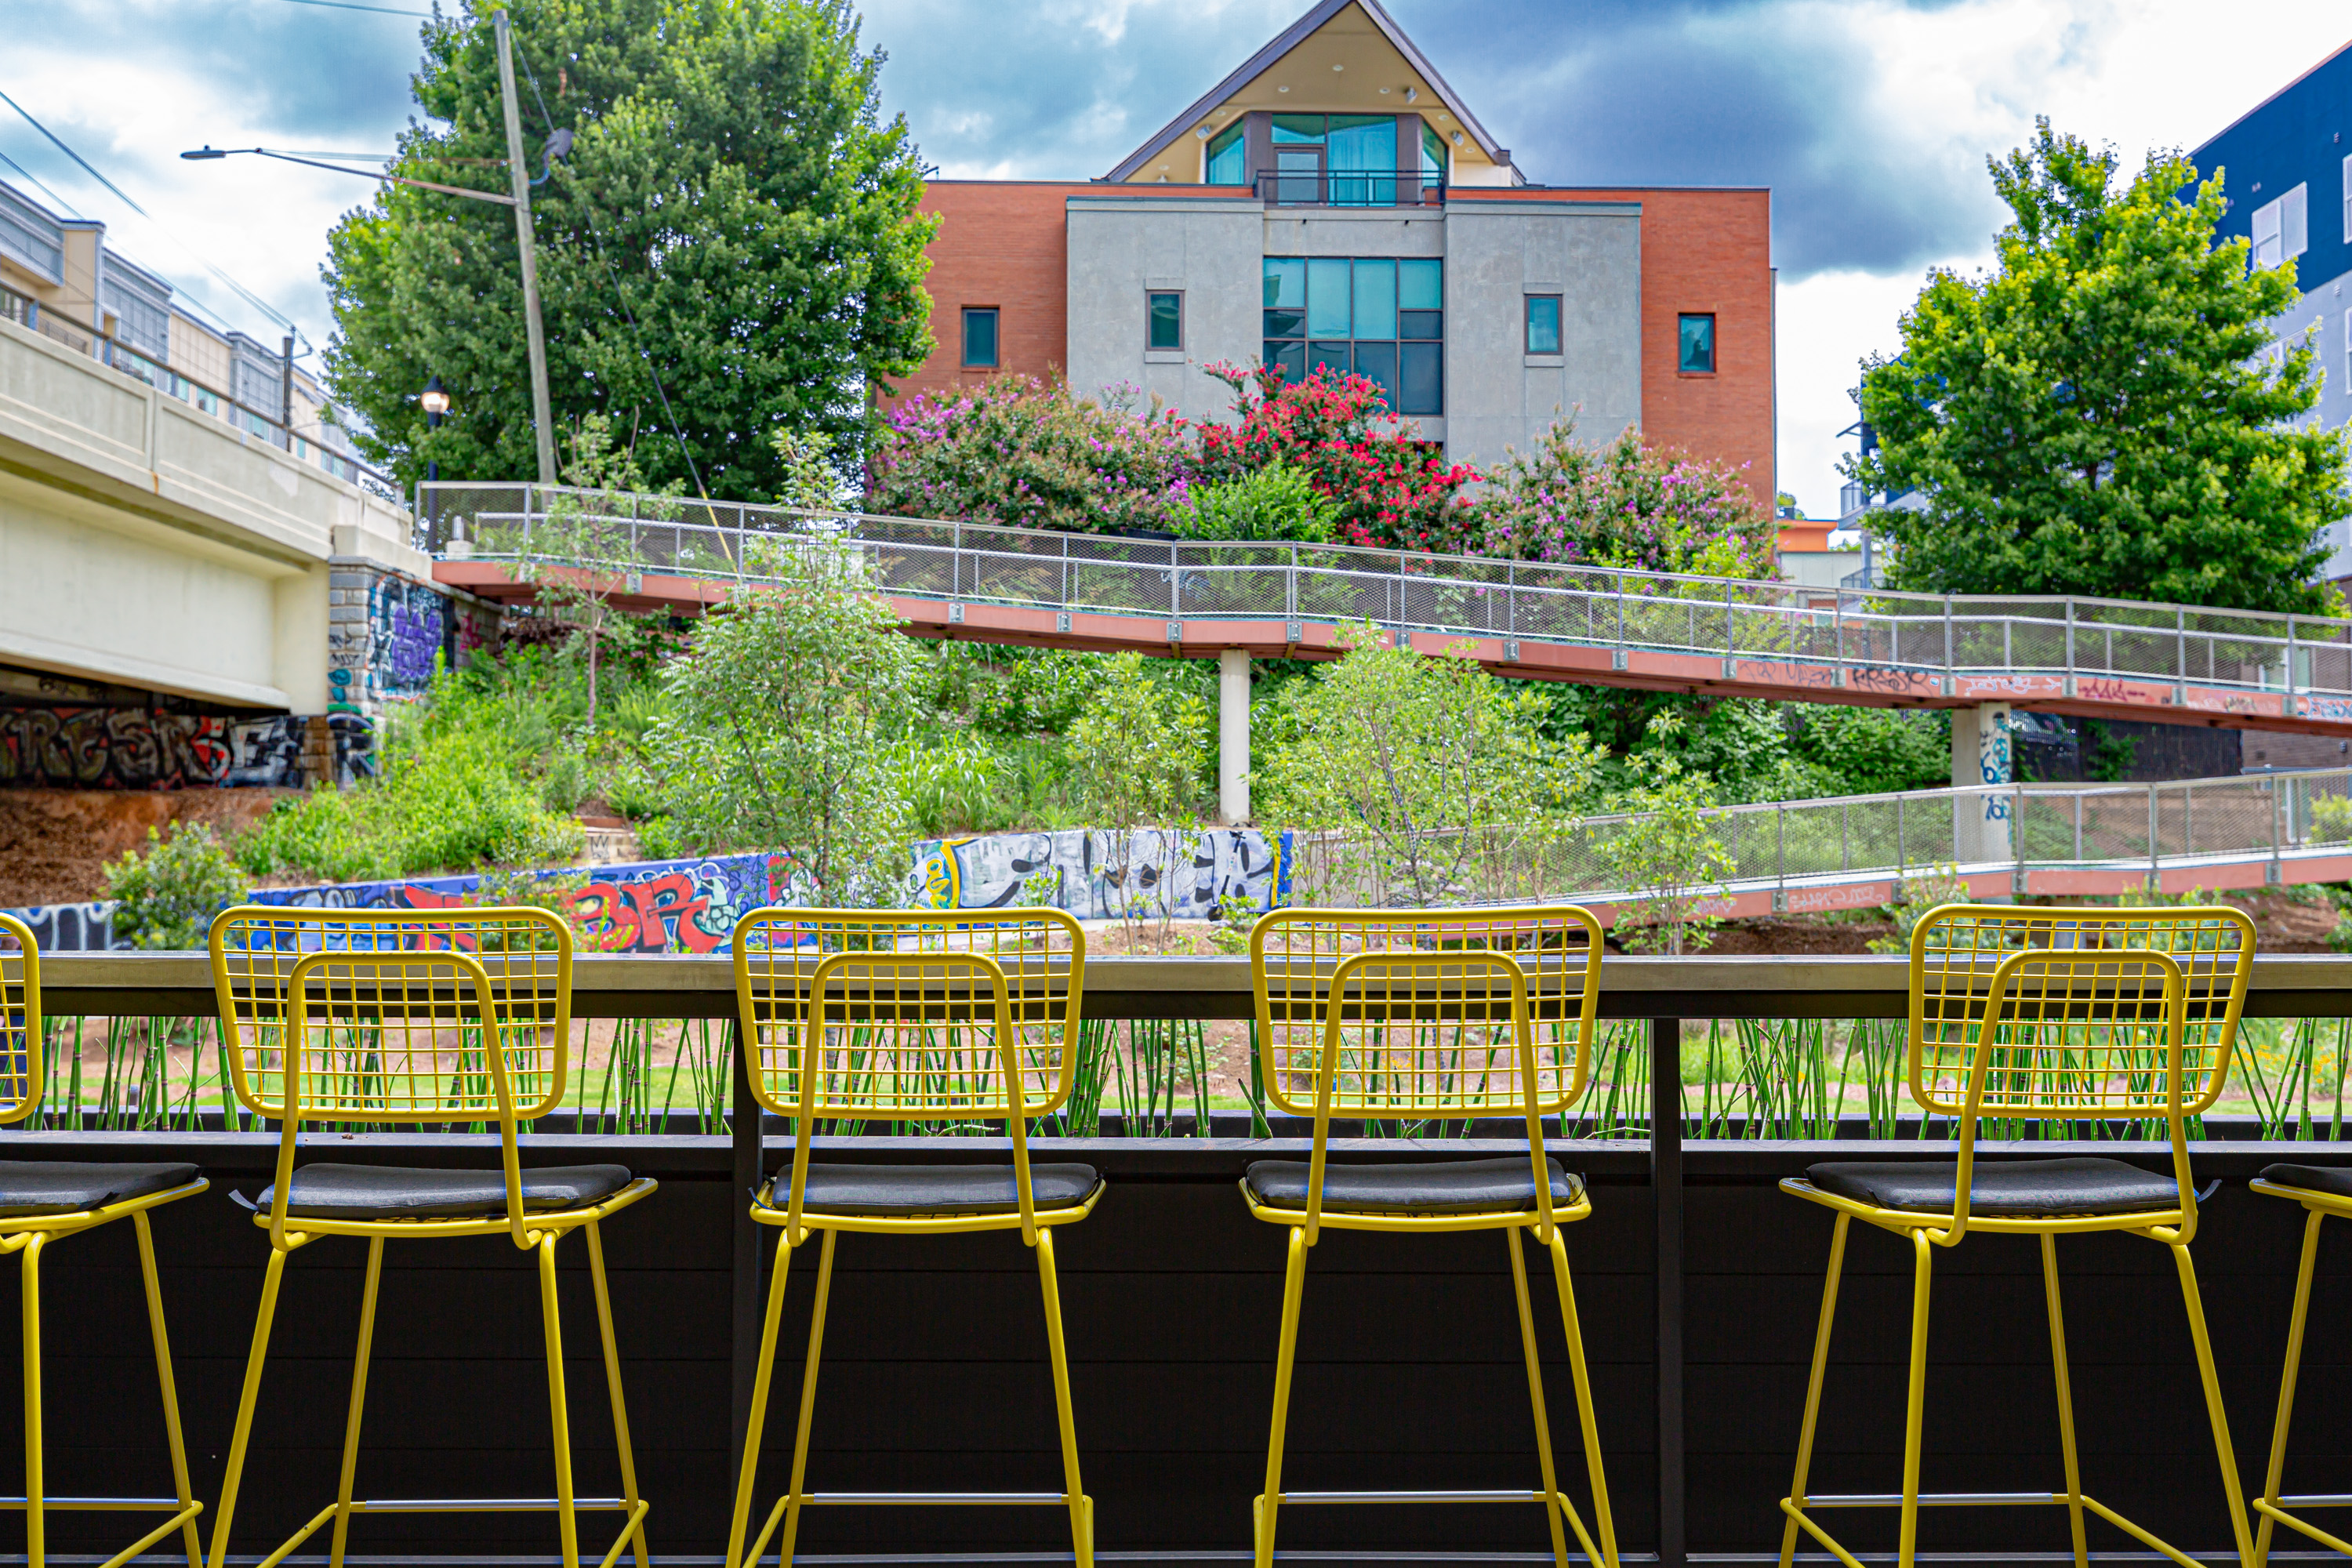 Four yellow bar chairs at the rail on the covered, front patio overlooking the Eastside Beltline trail at the Edgewood Avenue bridge